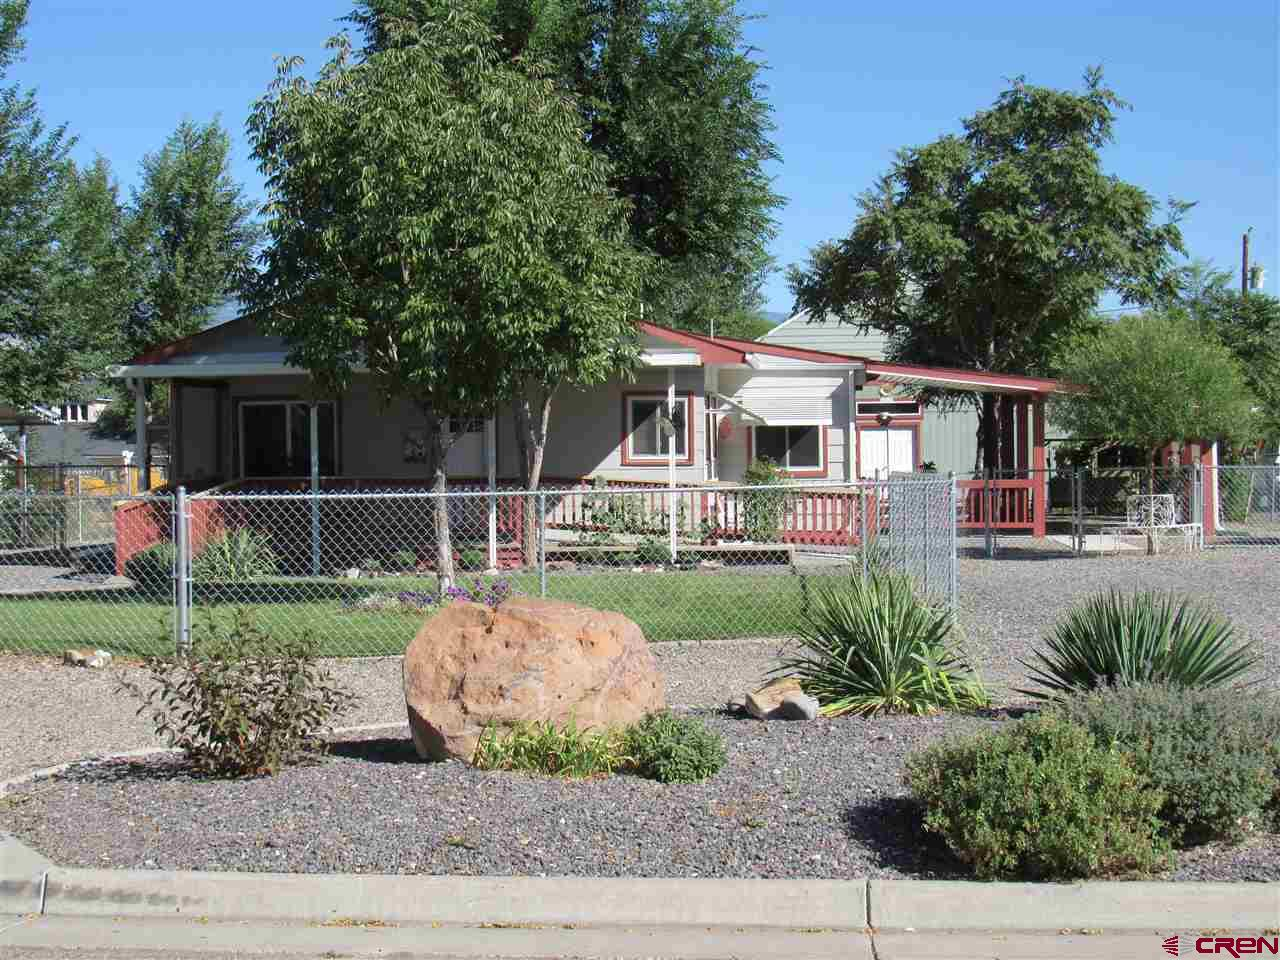 DON'T MISS OUT ON THIS BEAUTIFUL PROPERTY!!!  Located on Garnet Mesa, this property has an immaculately landscaped yard that is fully fenced with chain link.  HUGE over sized, detached two car garage with tons of storage and even a work area.   Lots of trees and bushes, mature grape vines and raspberries.   The home is currently a 2 bedroom, but could easily be converted back into a 3 bedroom.  Home was remodeled in 2015, with lots of upgrades including a new high efficiency furnace.  This home is handicap accessible.  This one is move in ready.....Don't wait to take a look, call today !